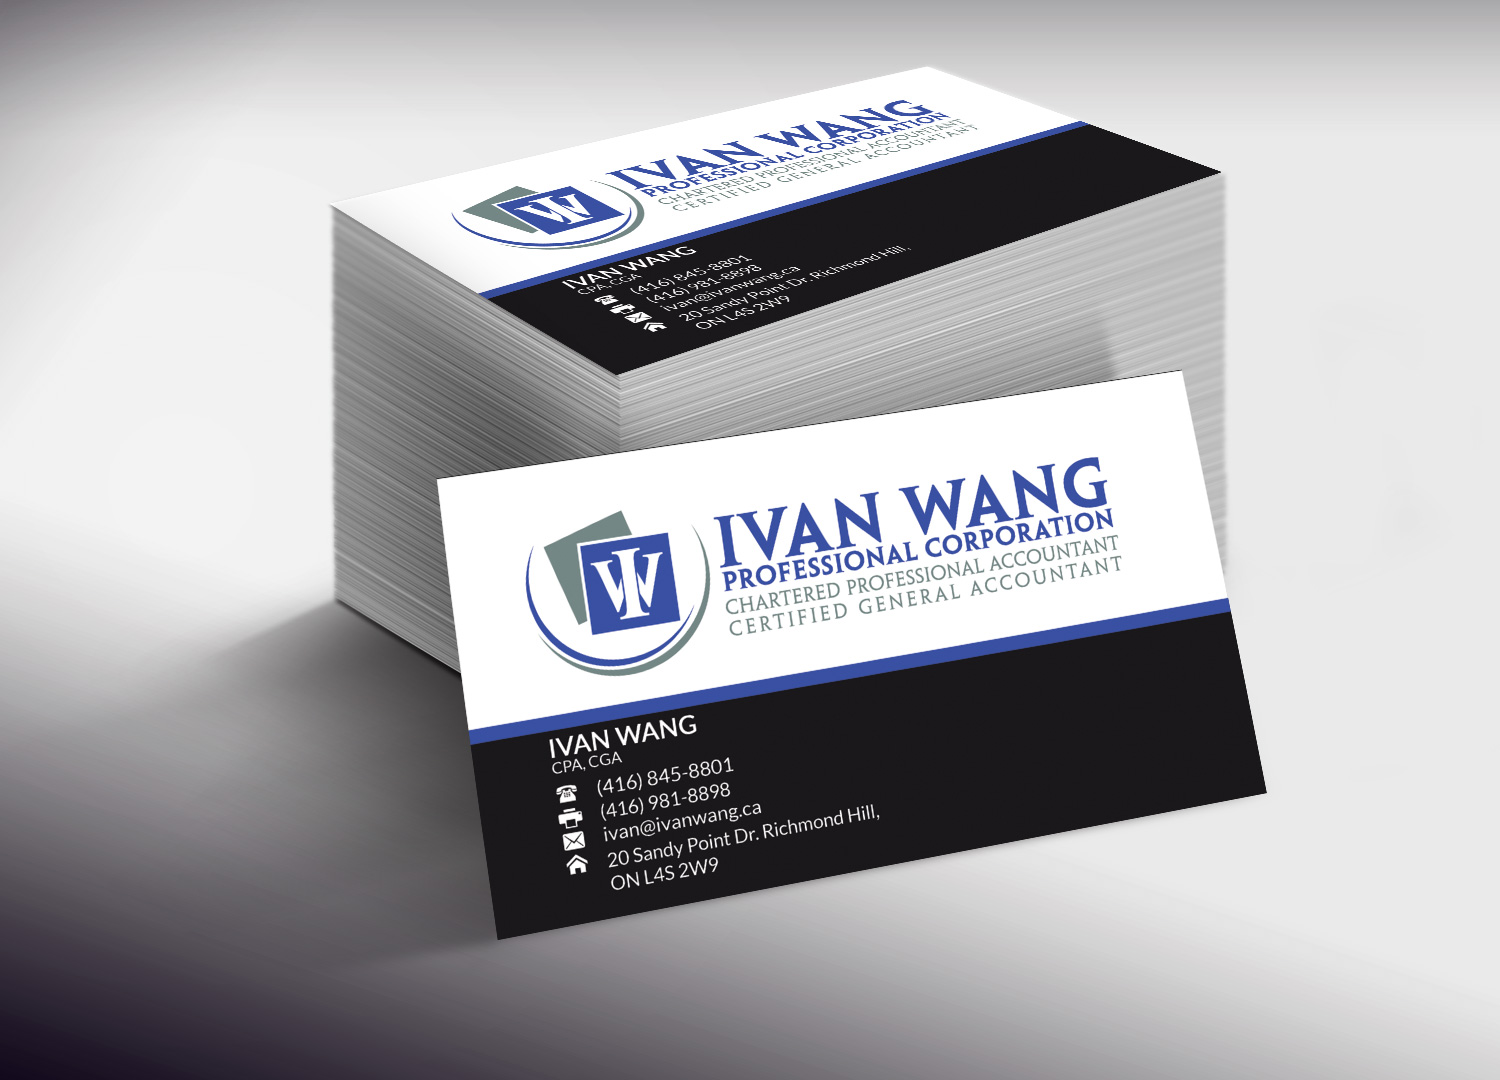 Business Card Design for Ivan Wang by Lanka Ama | Design #4703550